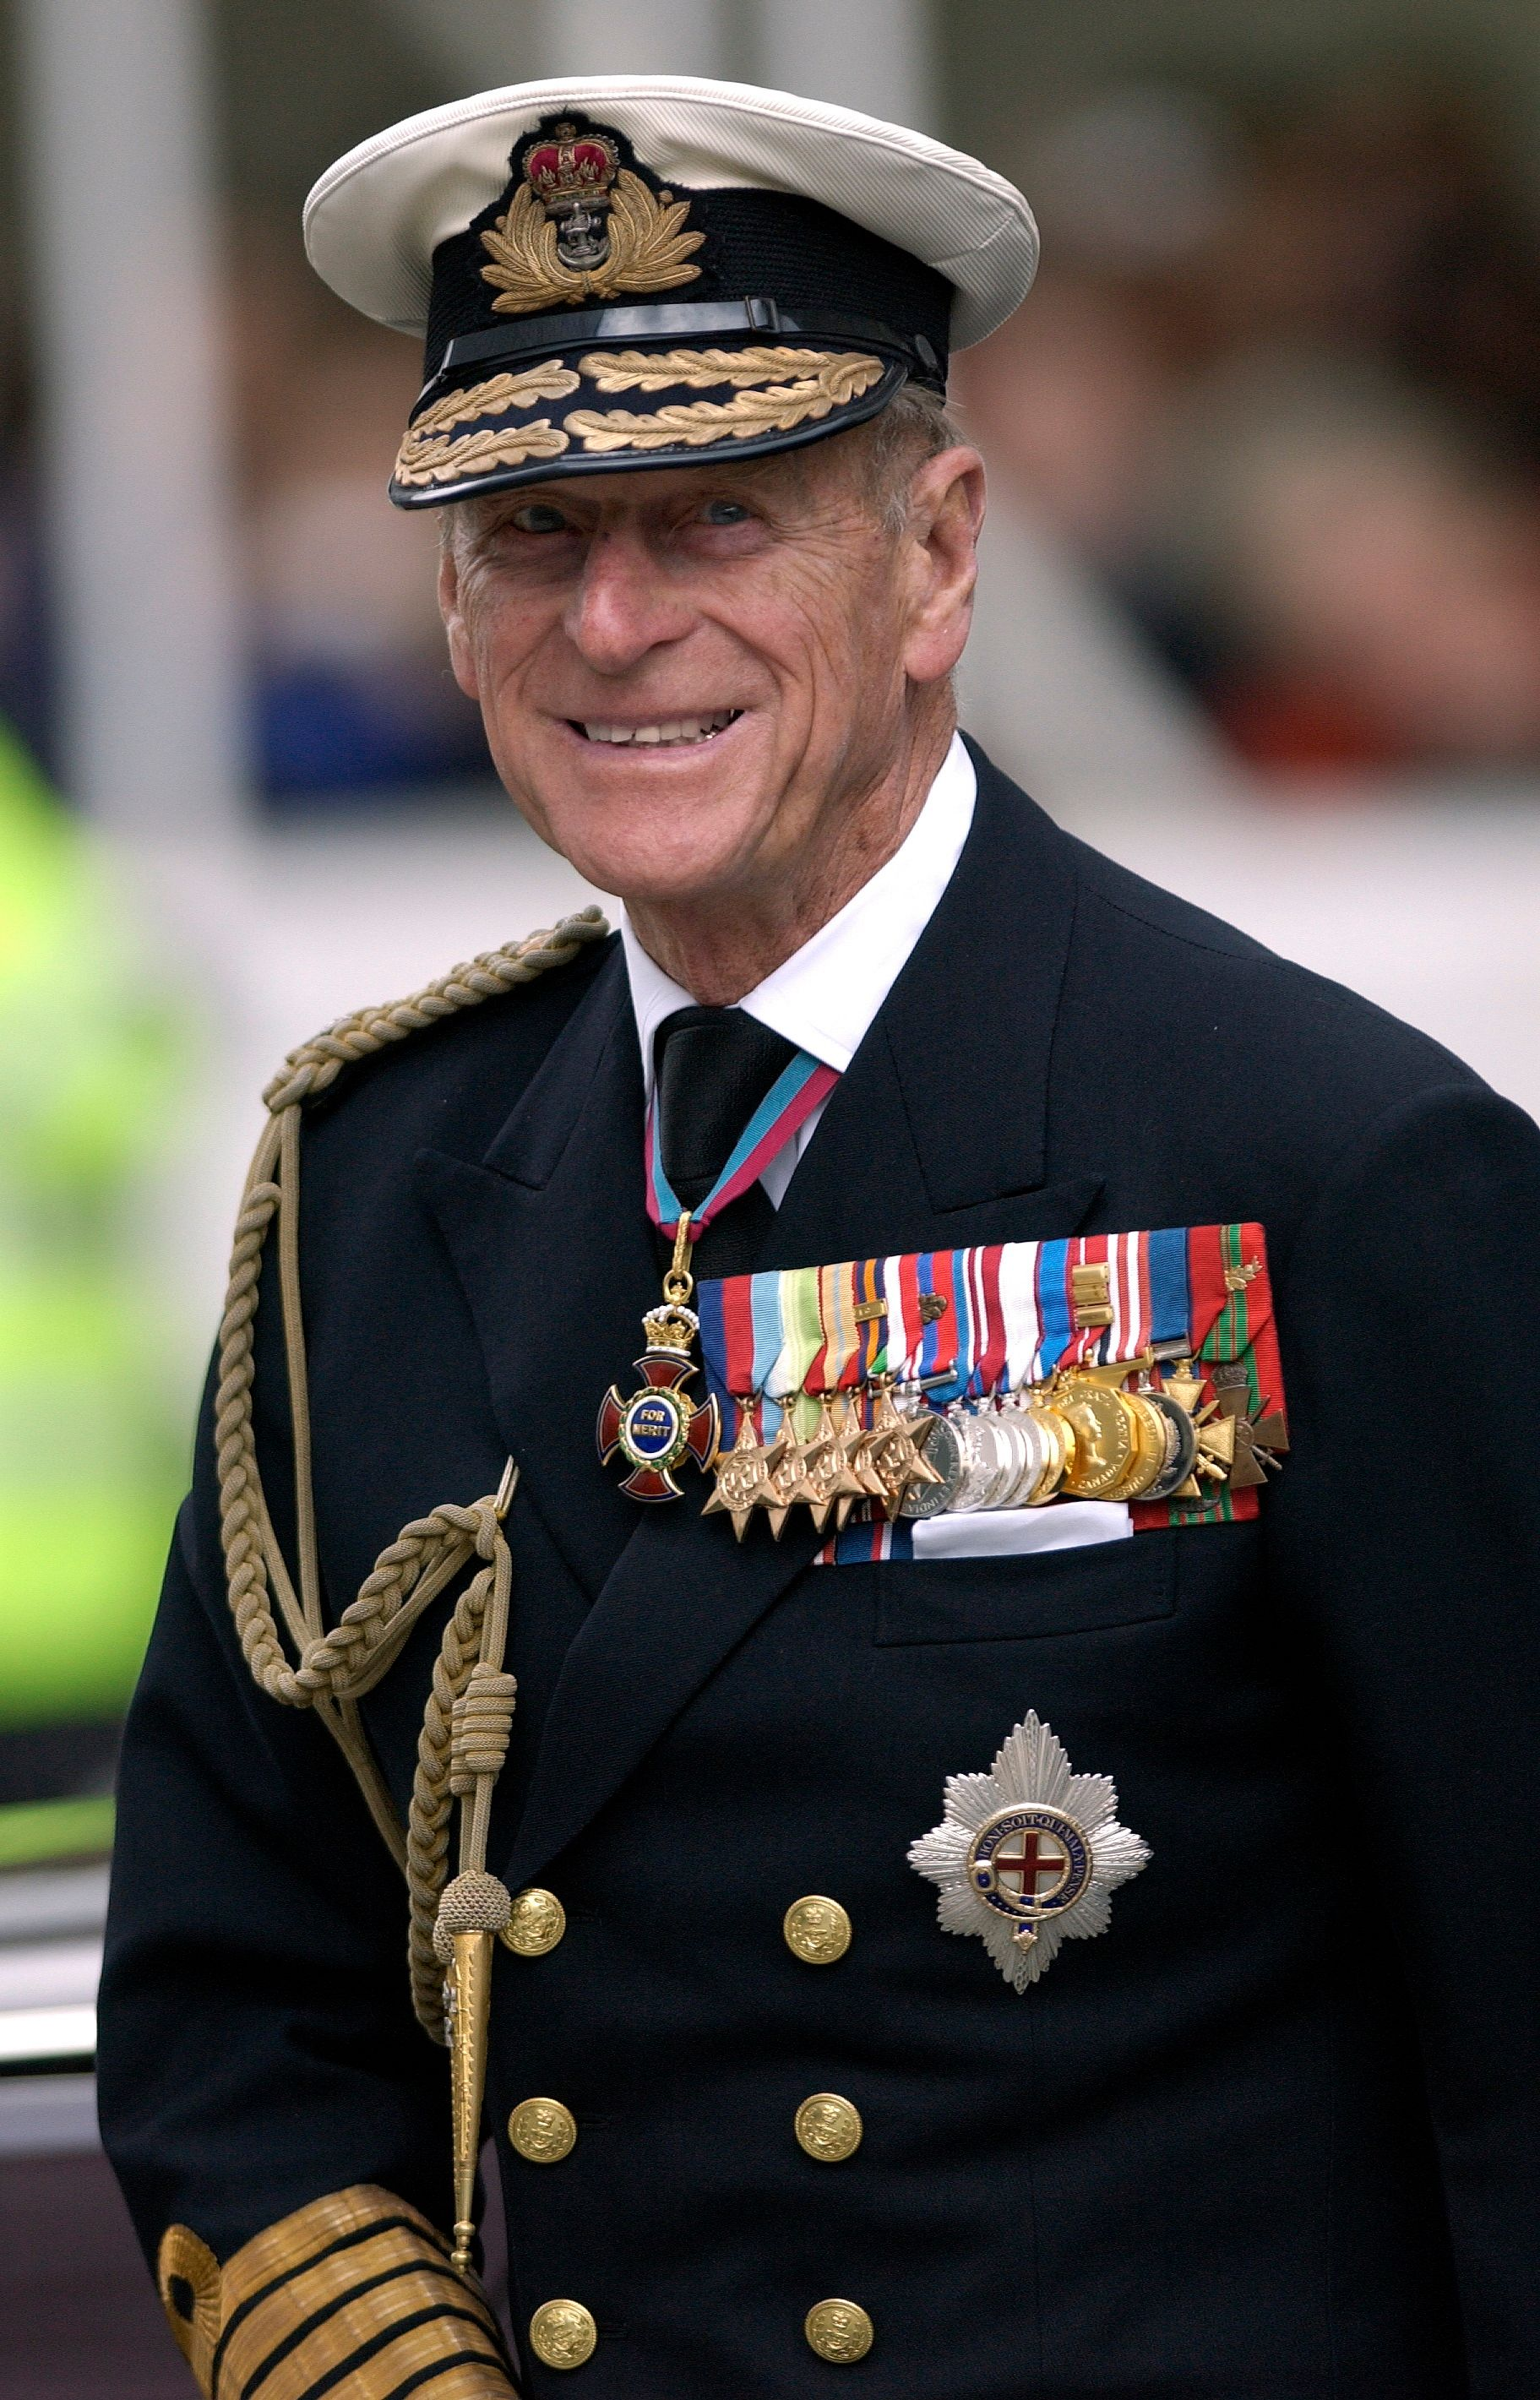 Prince Philip photographed in his military uniform on October 10, 2003. | Photo: Getty Images